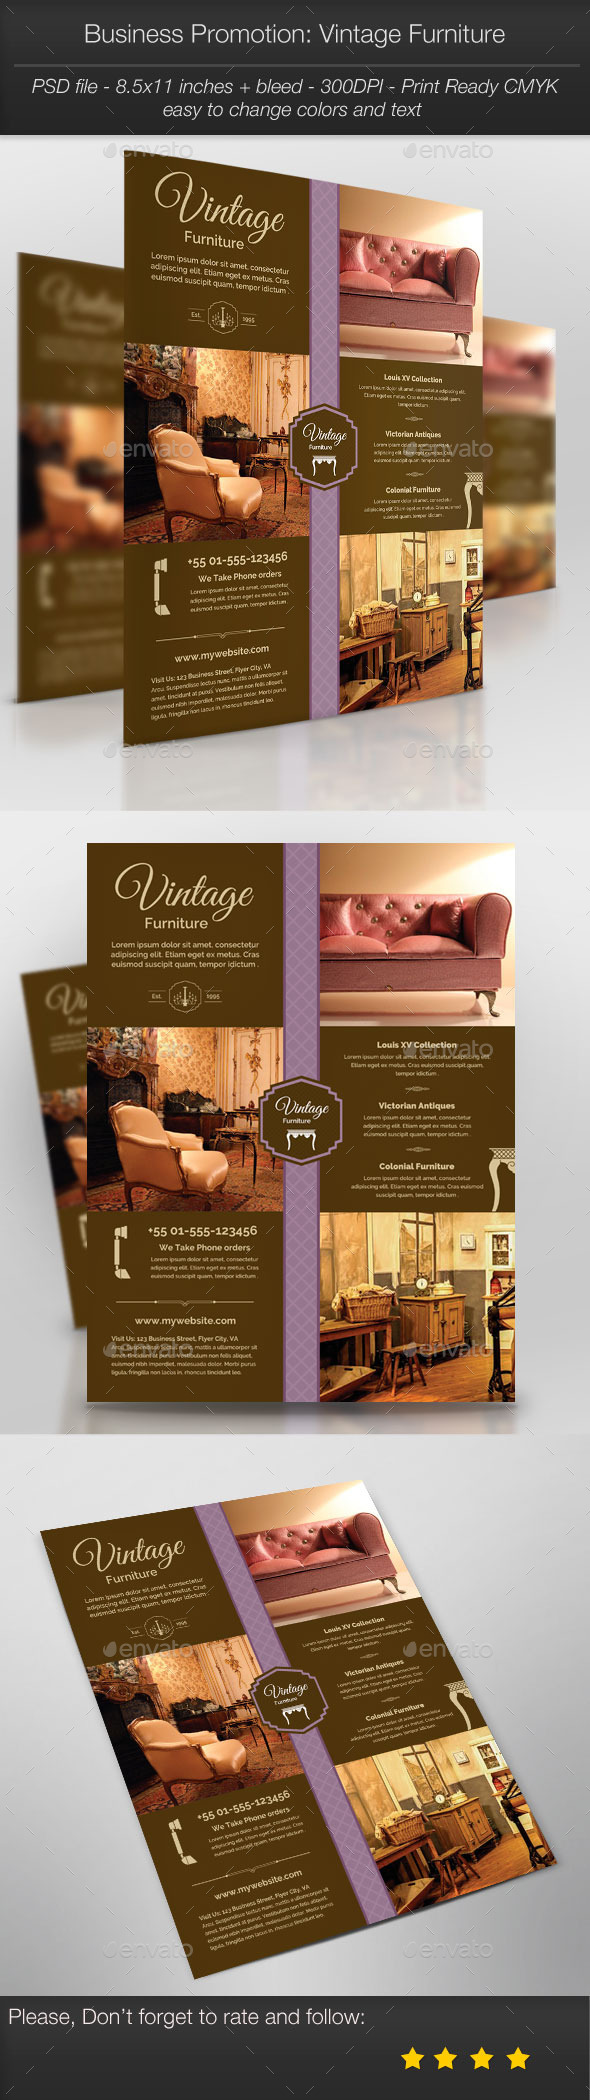 GraphicRiver Business Promotion Vintage Furniture 10997990